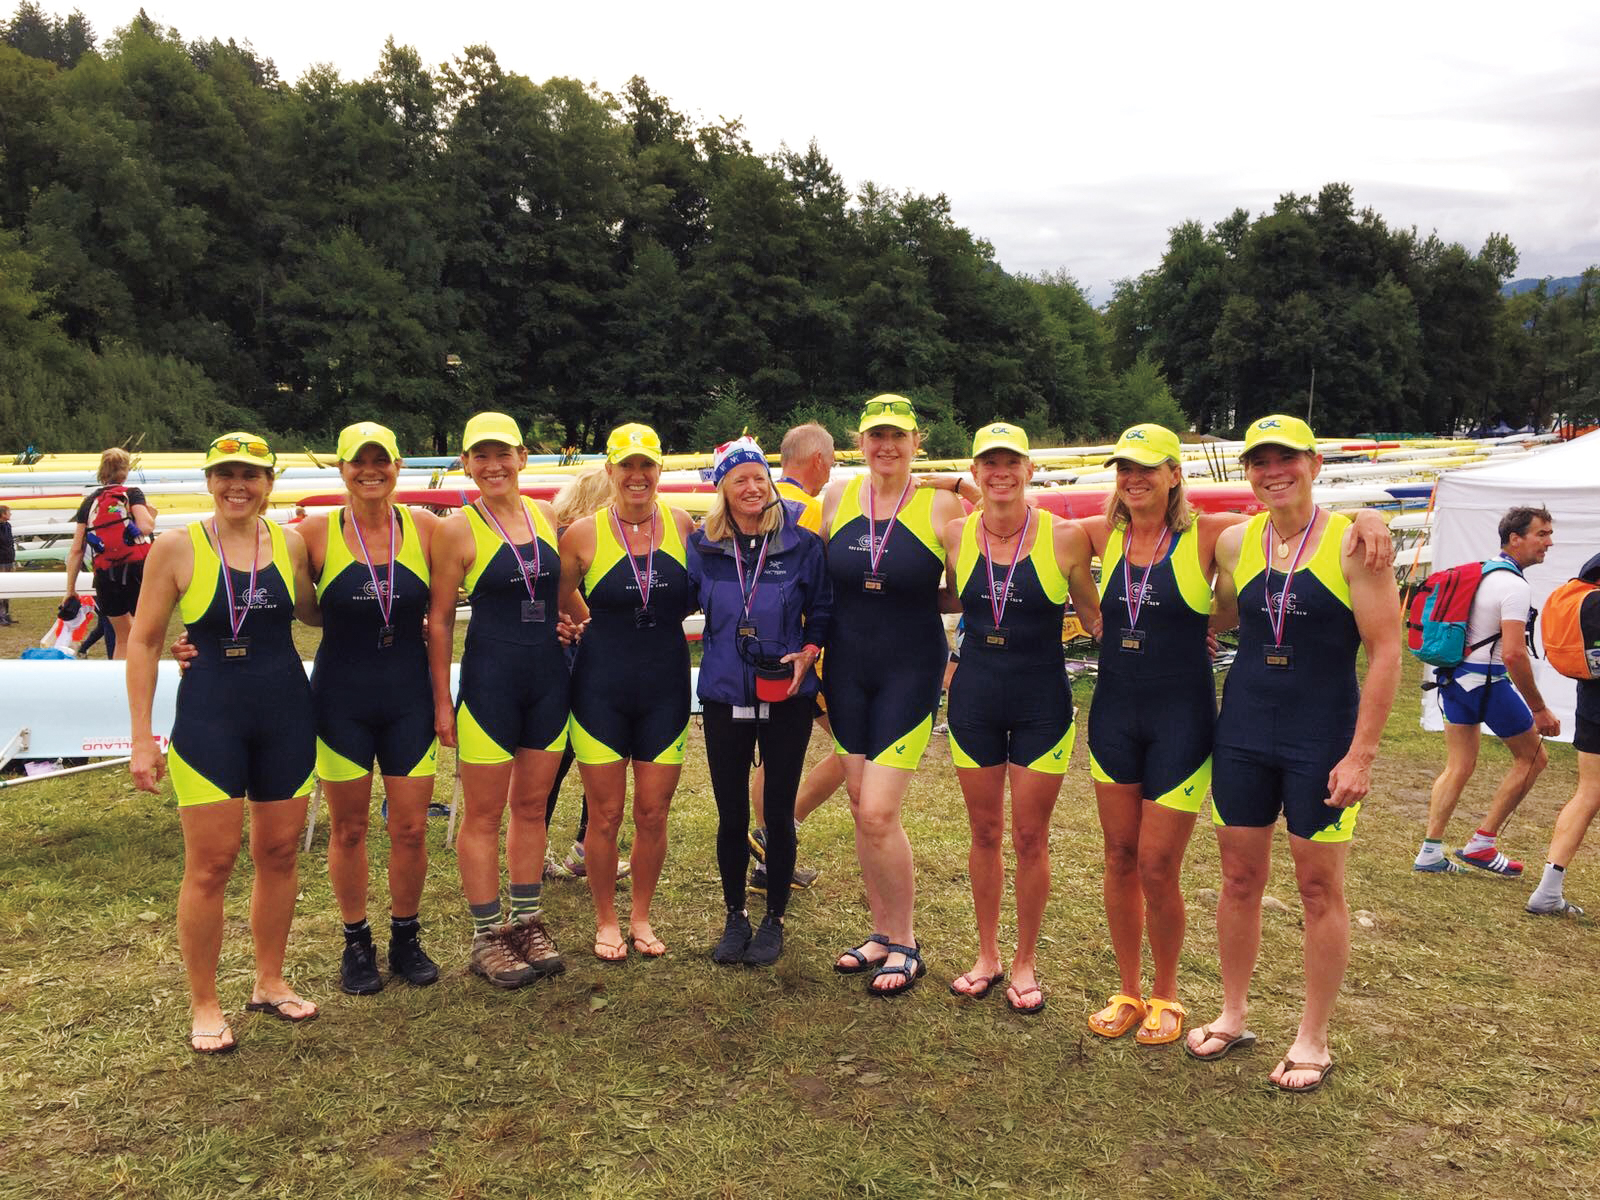 Stacey Jamar Caffery '81 with her teammates at the Masters World Rowing Championships in Bled, Slovenia.